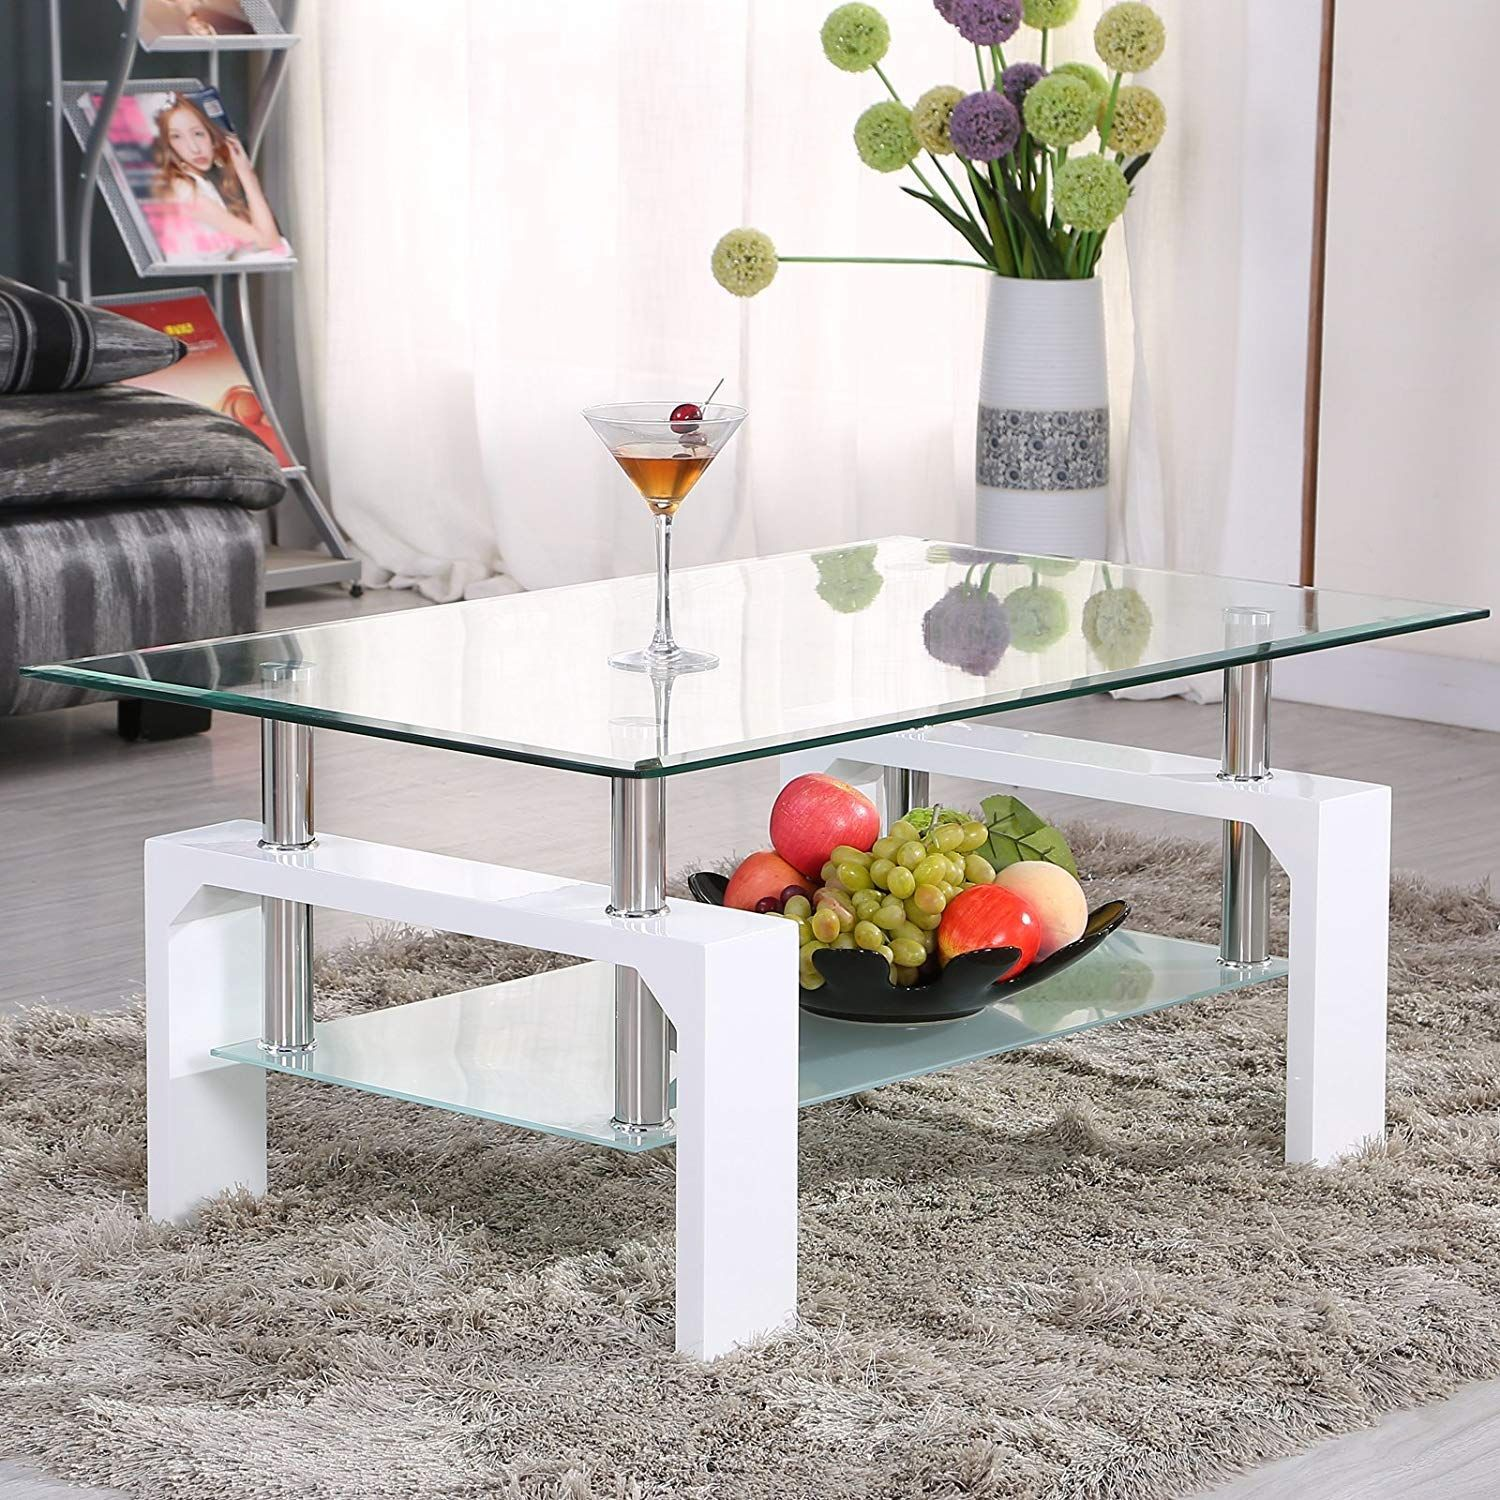 Amazon Com Mecor Rectangle Glass Coffee Table White Modern Side Coffee Table With Lower Shelf Wooden Legs Coffee Table Design Coffee Table White Coffee Table [ 1500 x 1500 Pixel ]